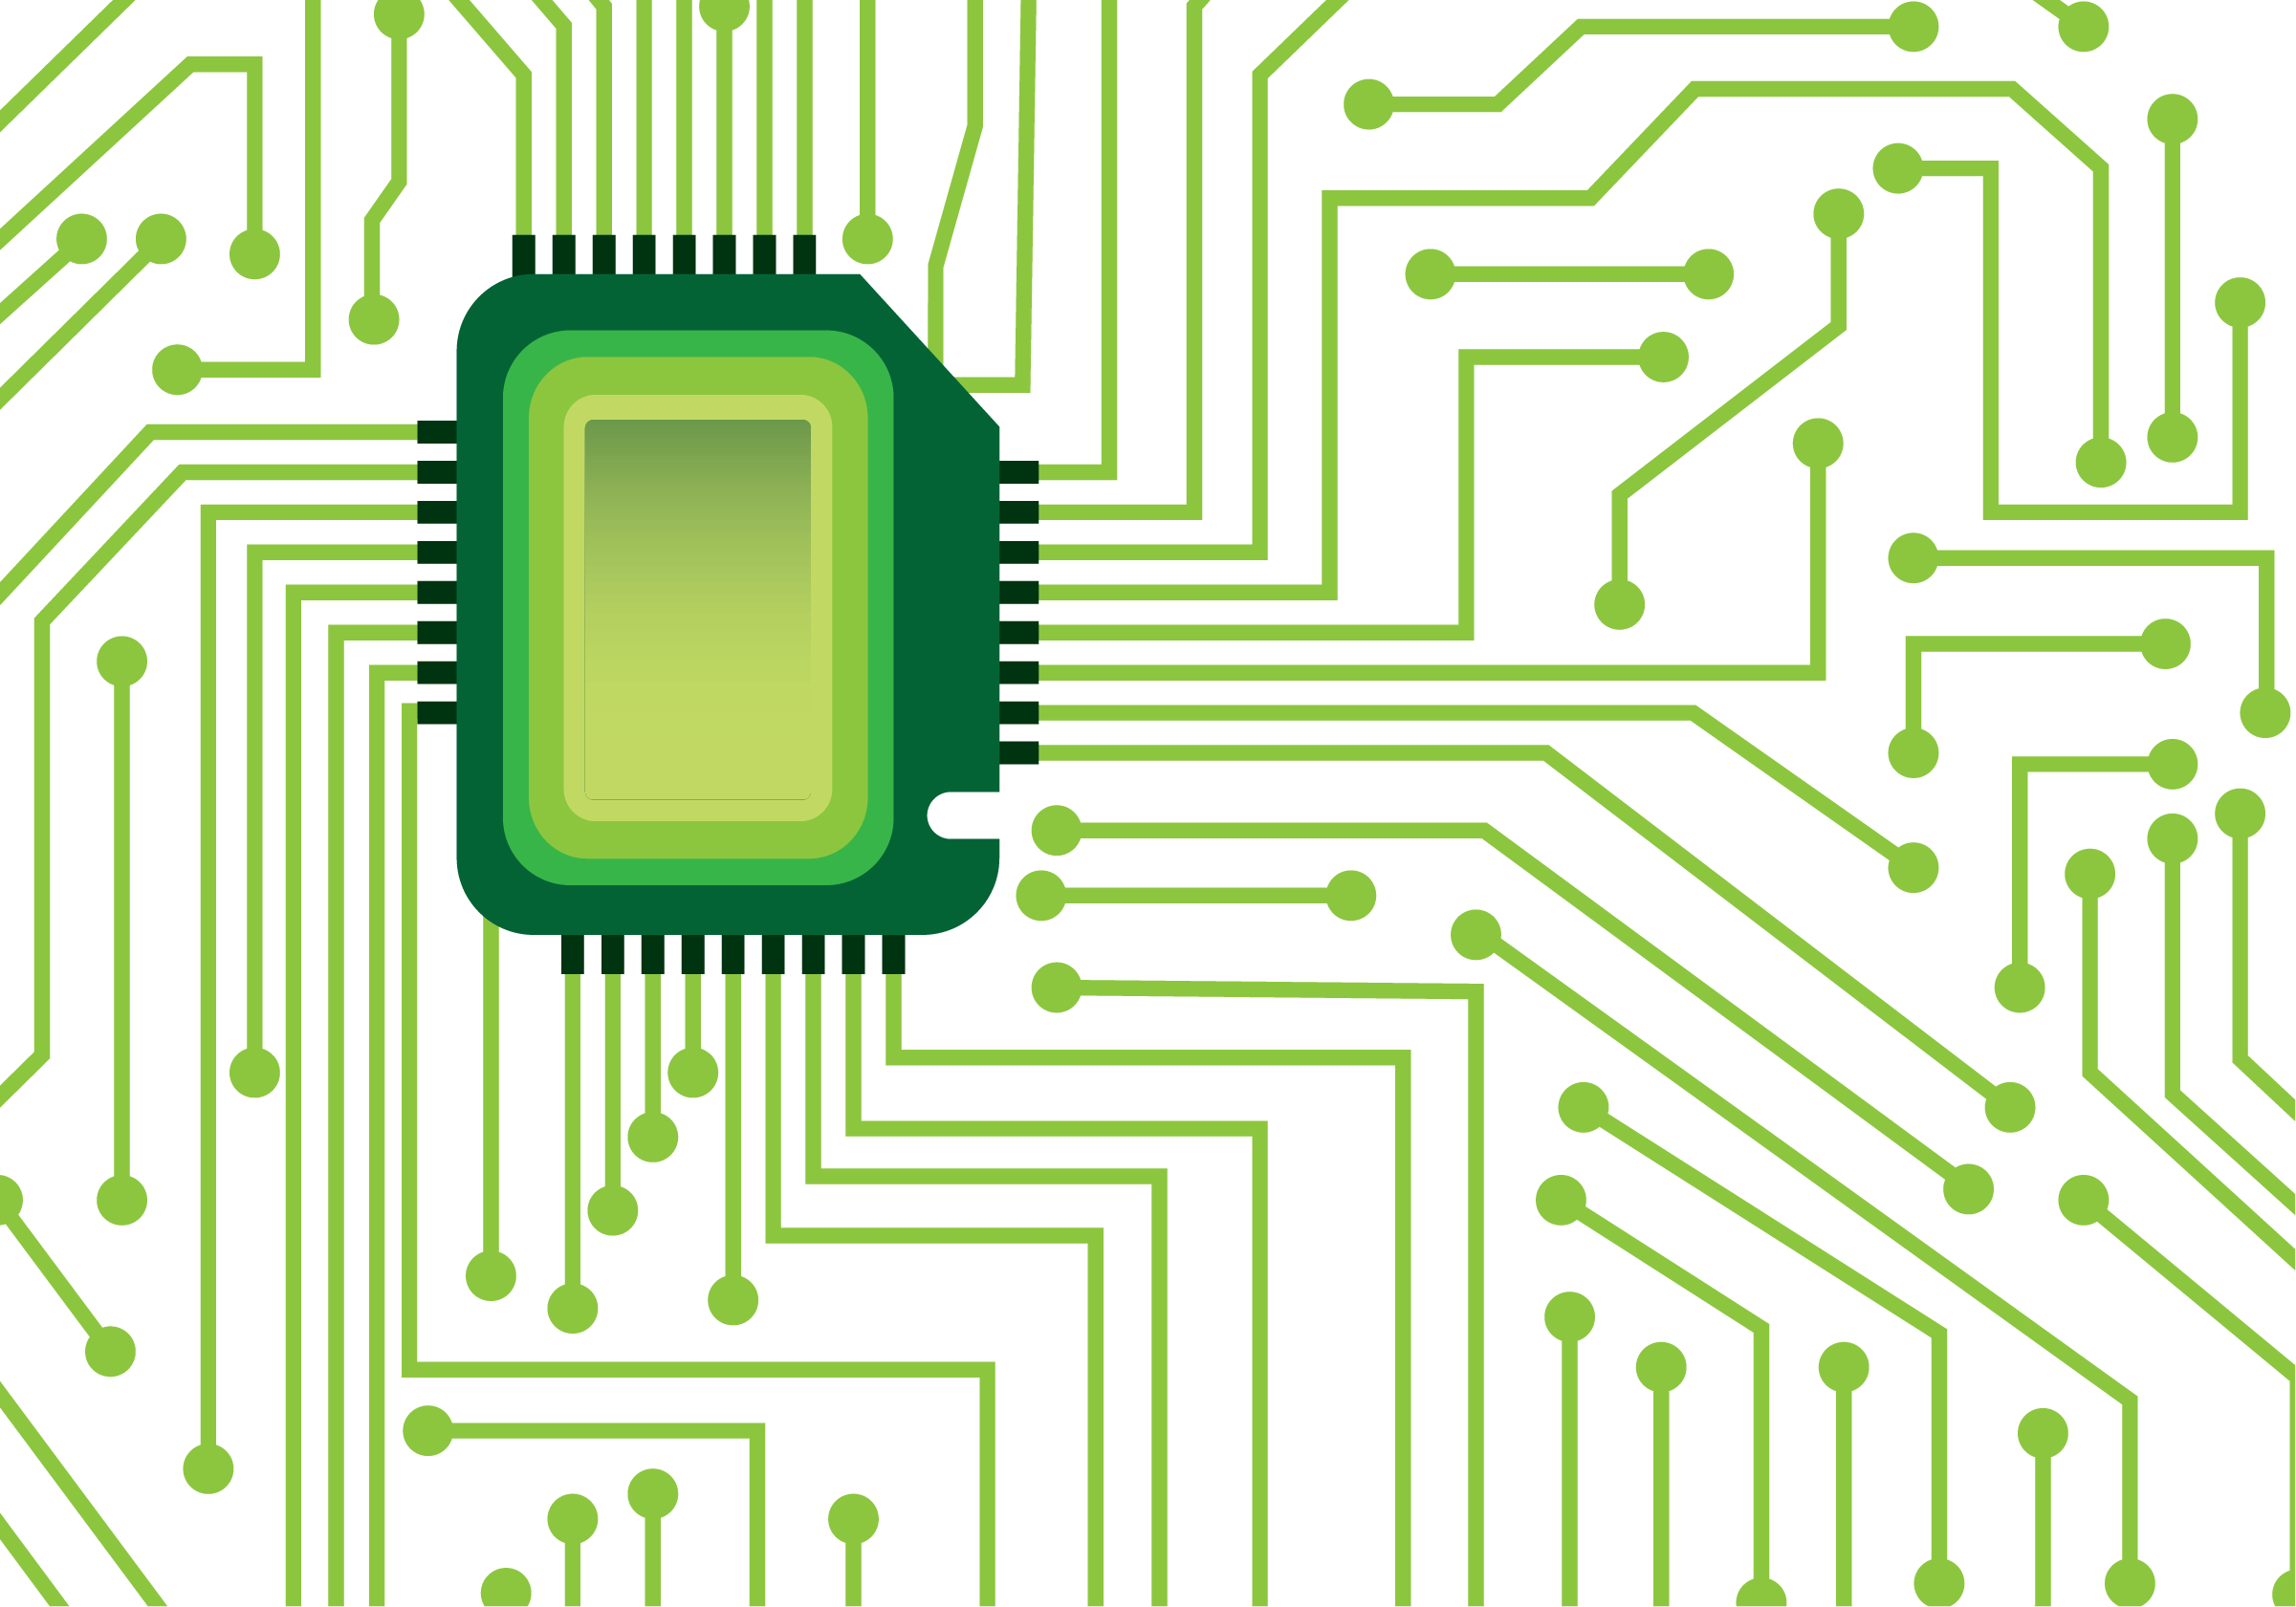 clipart Electrical network Integrated circuit Electronic engineering